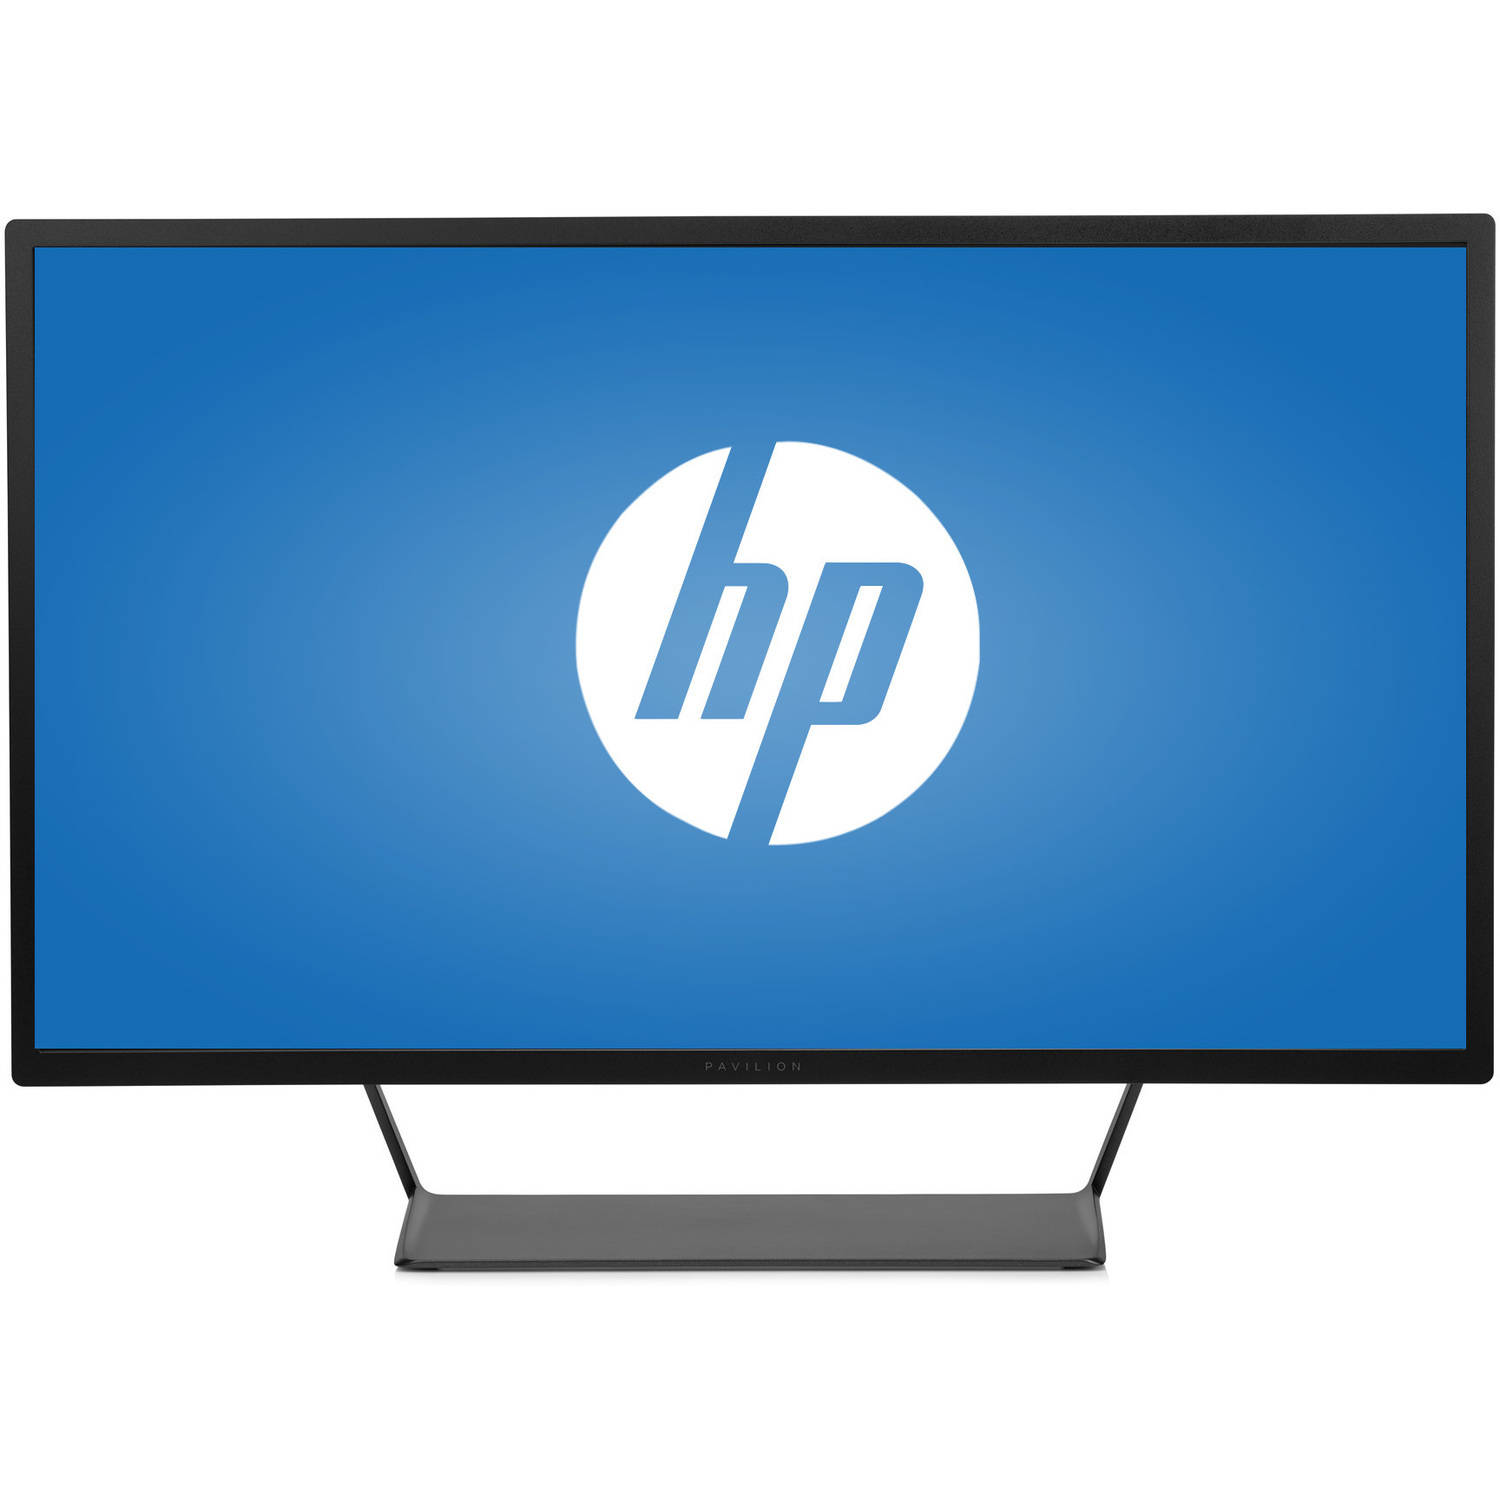 Refurbished - HP Pavilion 32 32